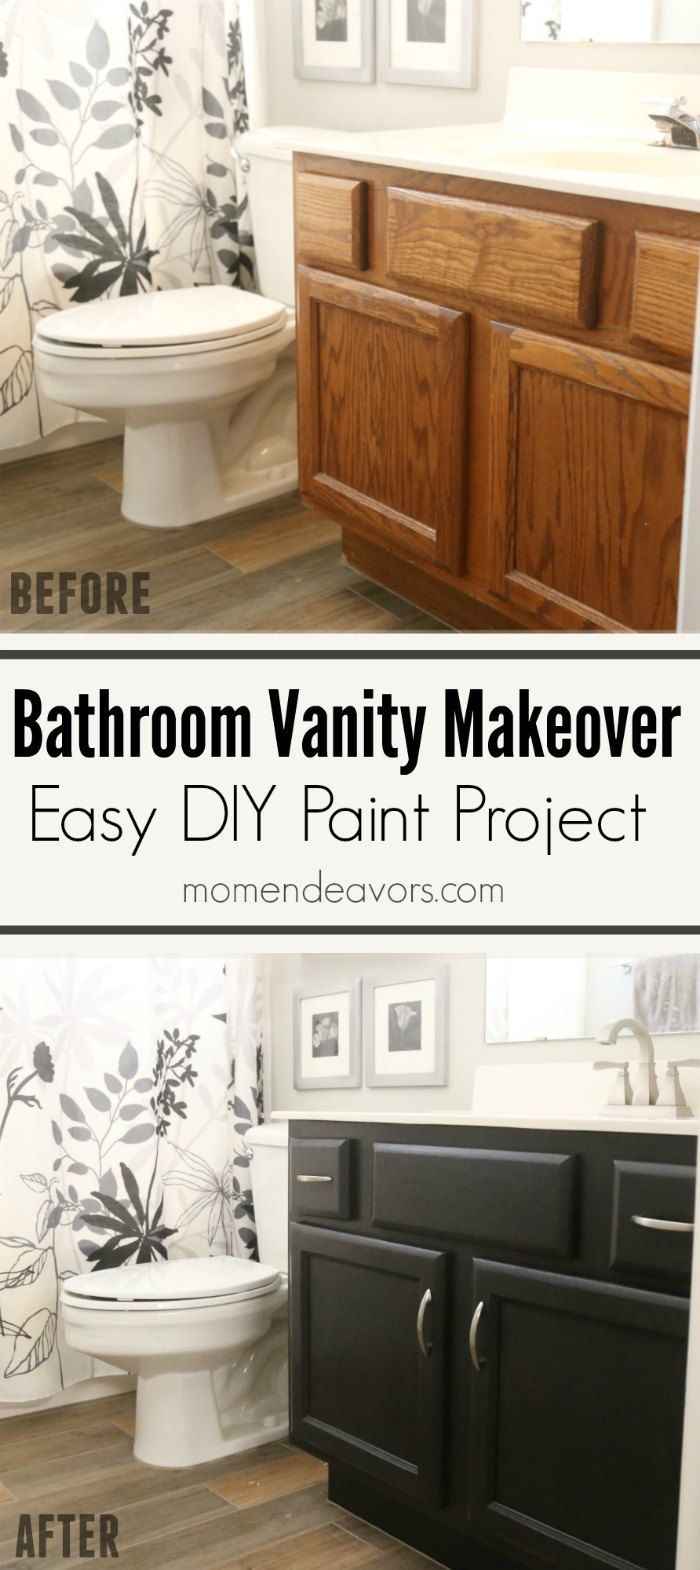 Painting Bathroom Cabinet bathroom vanity makeover – easy diy home paint project. paint